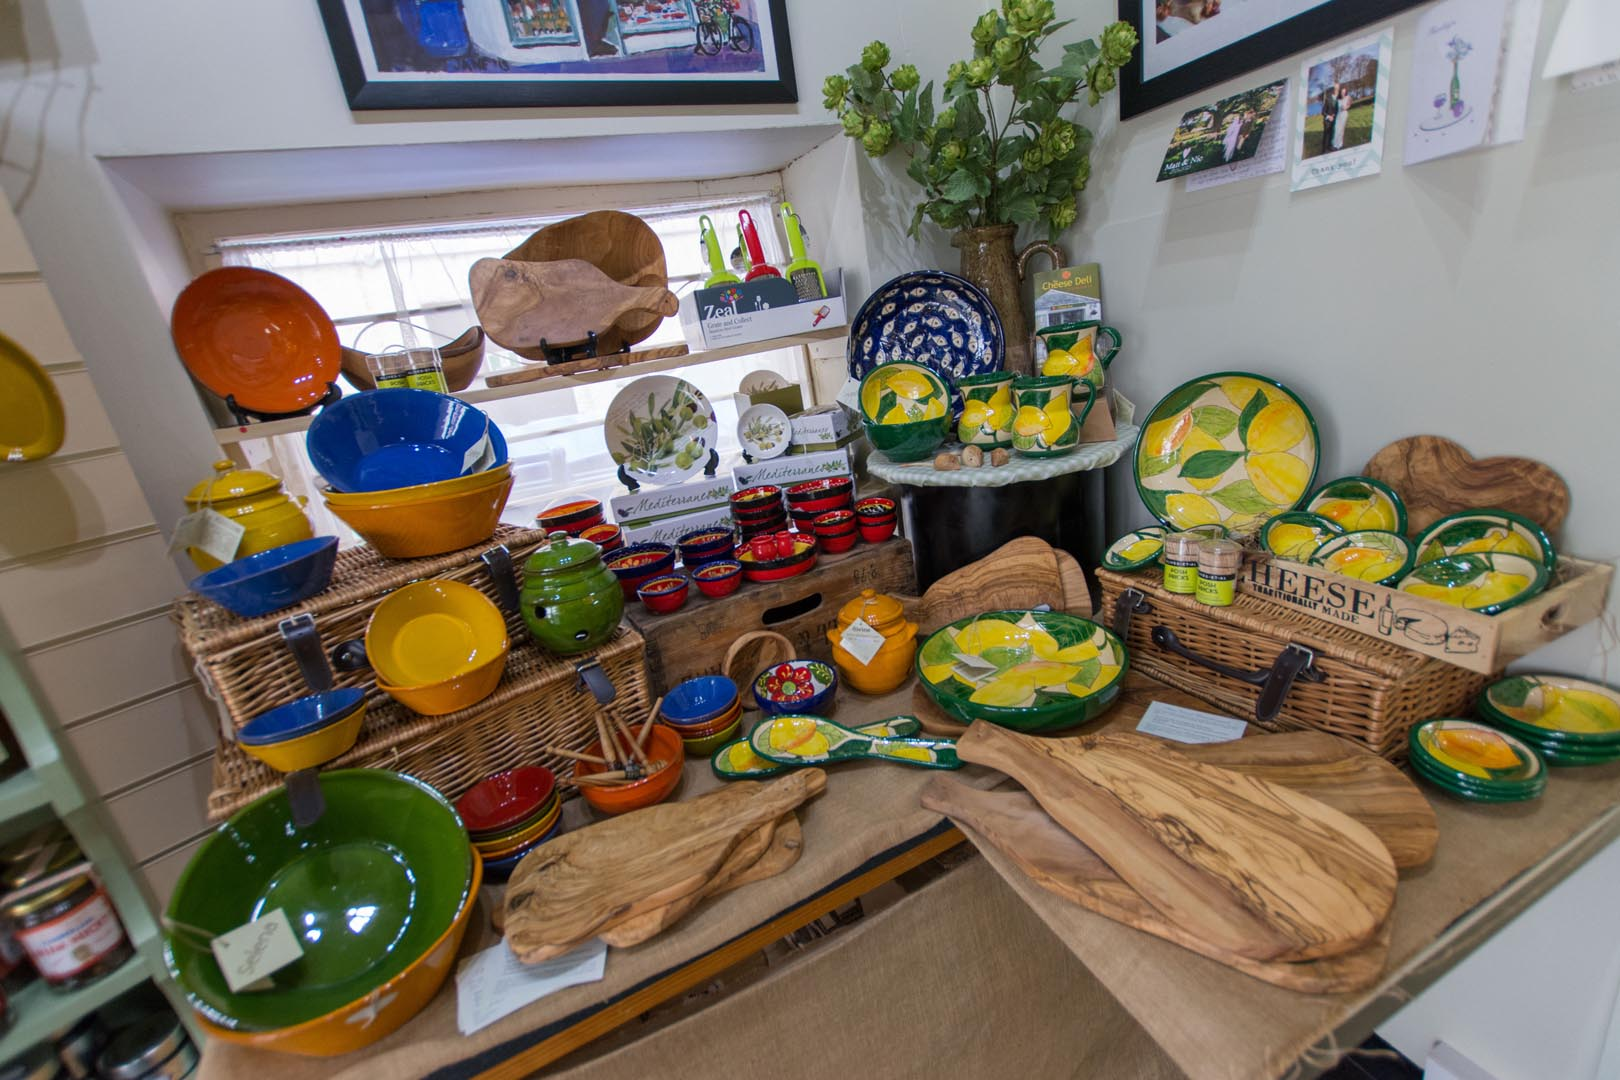 Cheese Deli Accessories and gift ideas